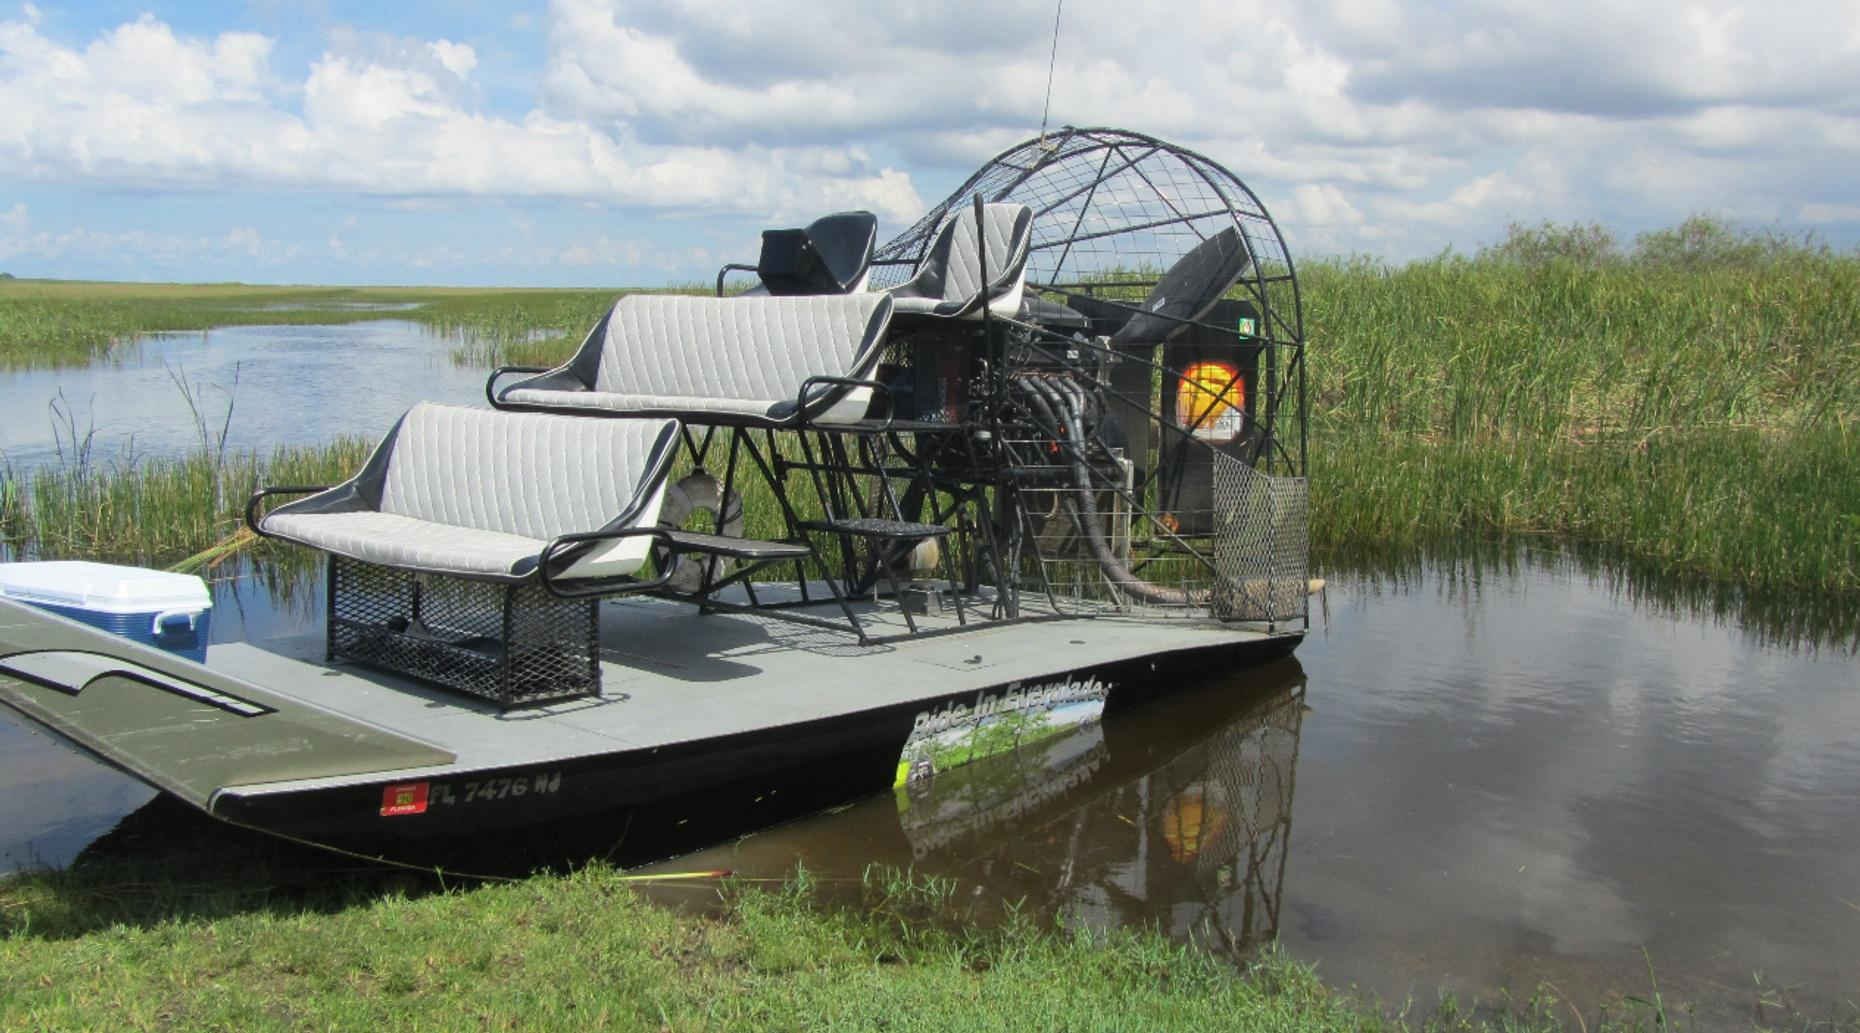 Airboat Tour on the Kissimmee River